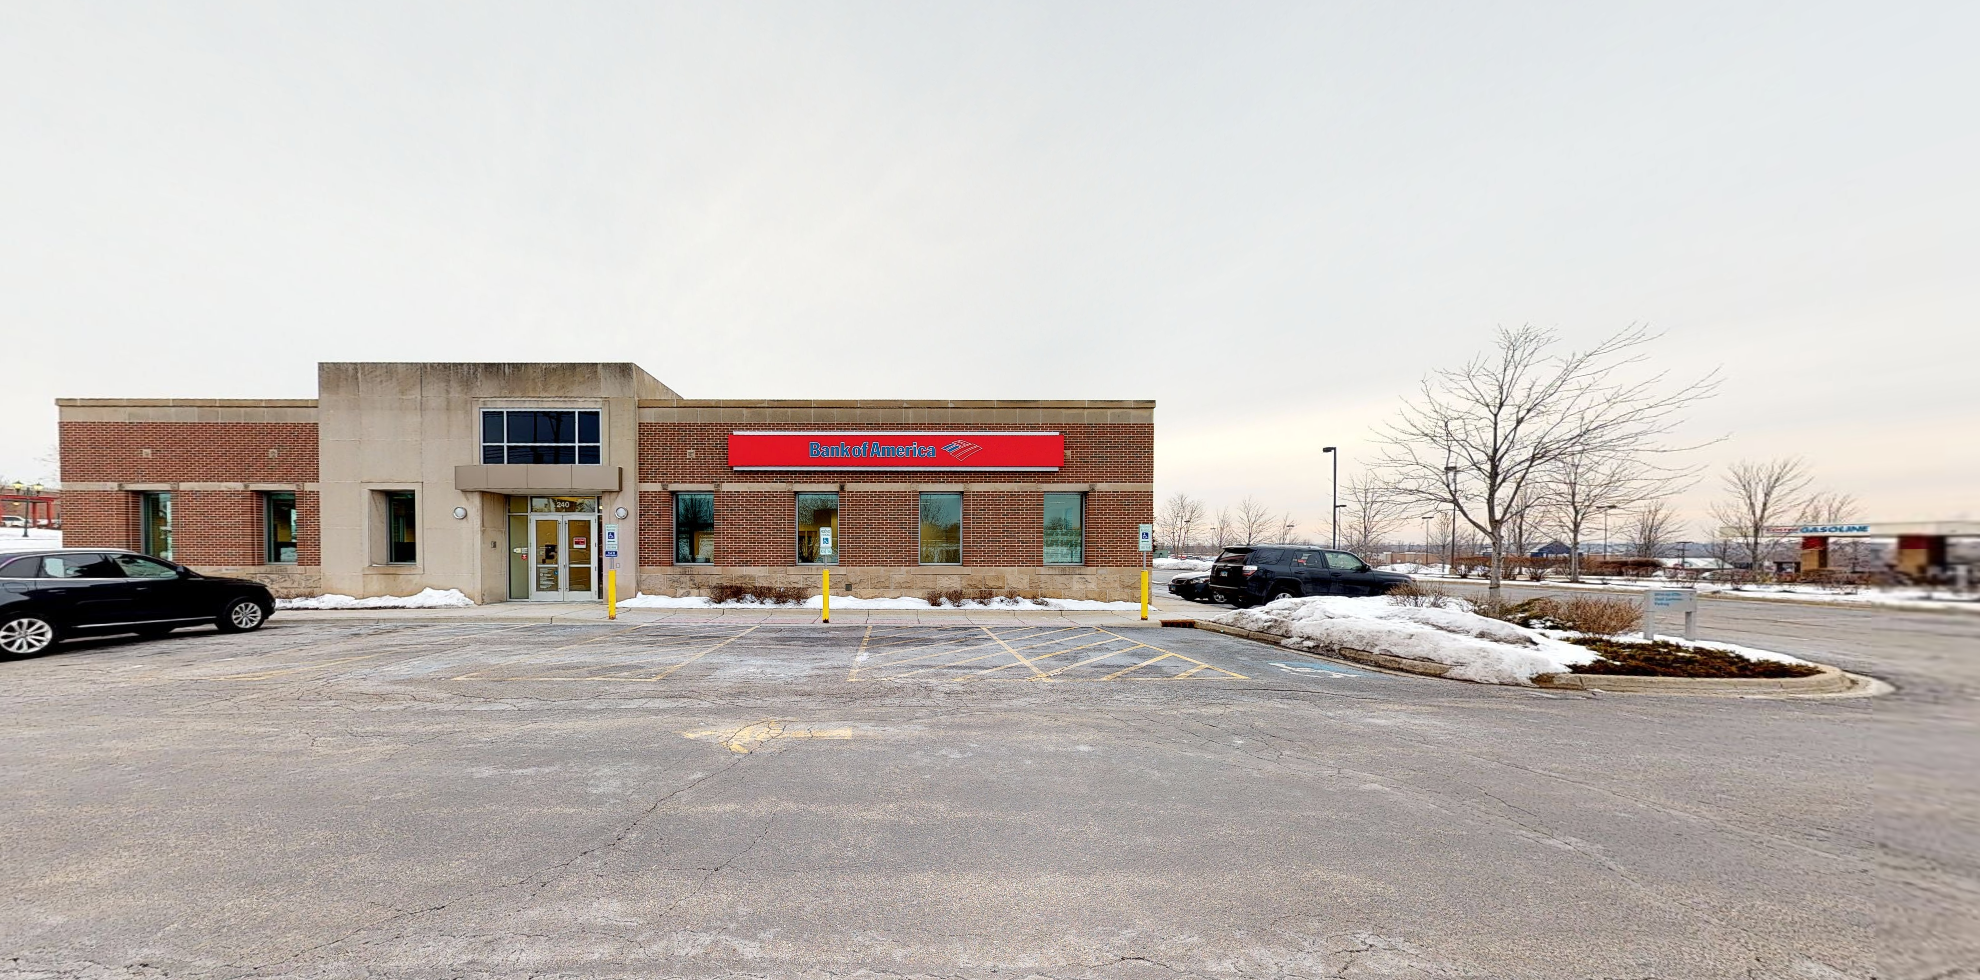 Bank of America financial center with drive-thru ATM | 240 N Randall Rd, Lake In The Hills, IL 60156